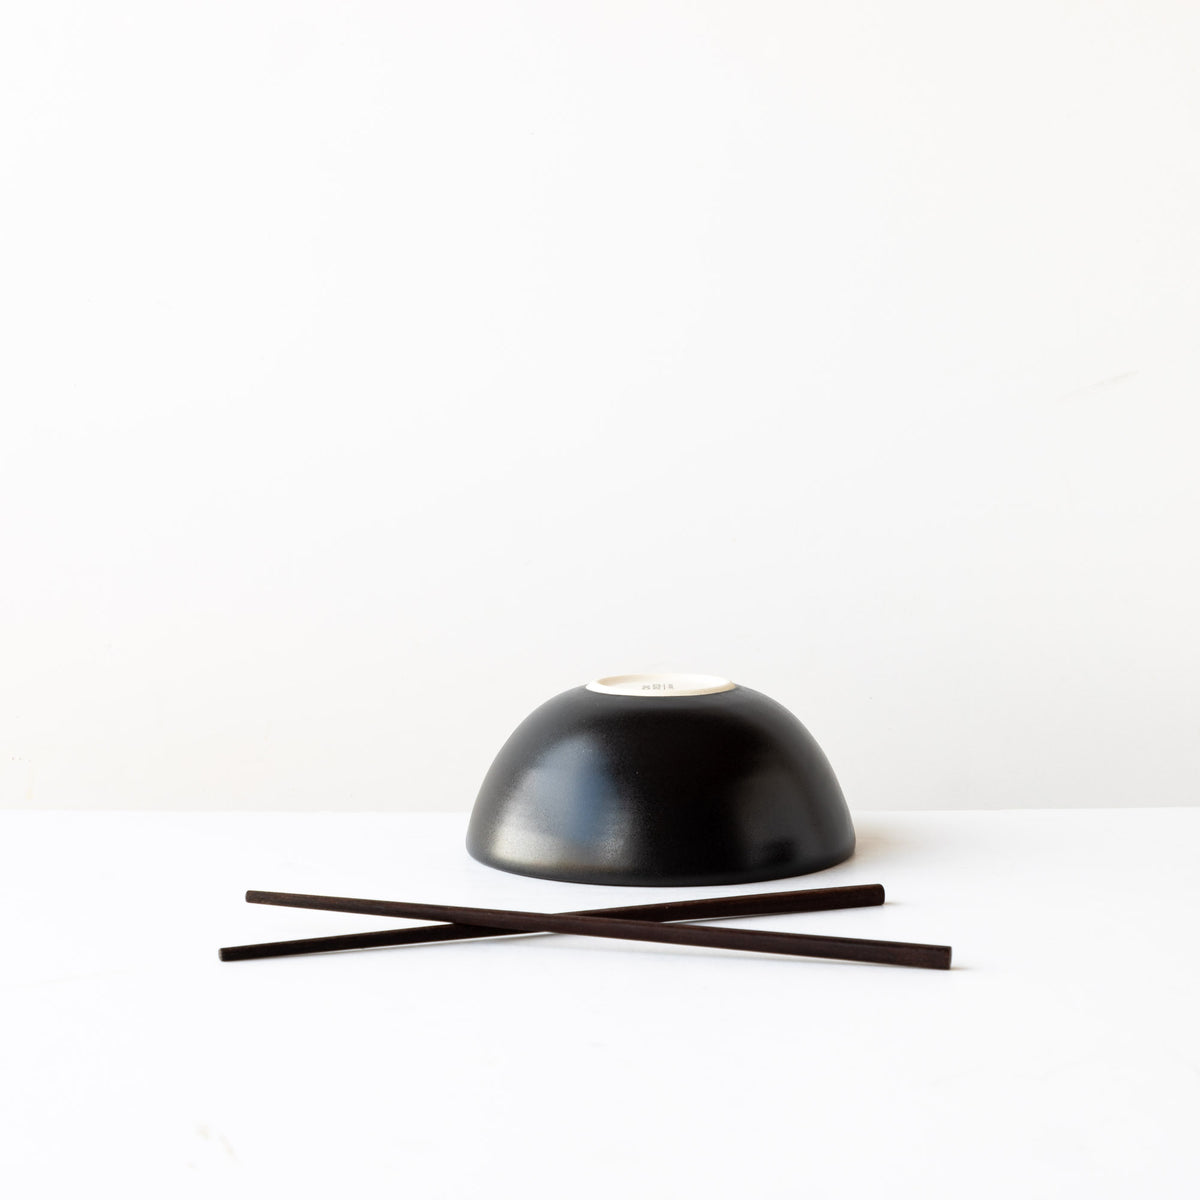 Upside Down Small Handmade Poke Bowl in Black Satin Glazed Porcelain - Sold by Chic & Basta